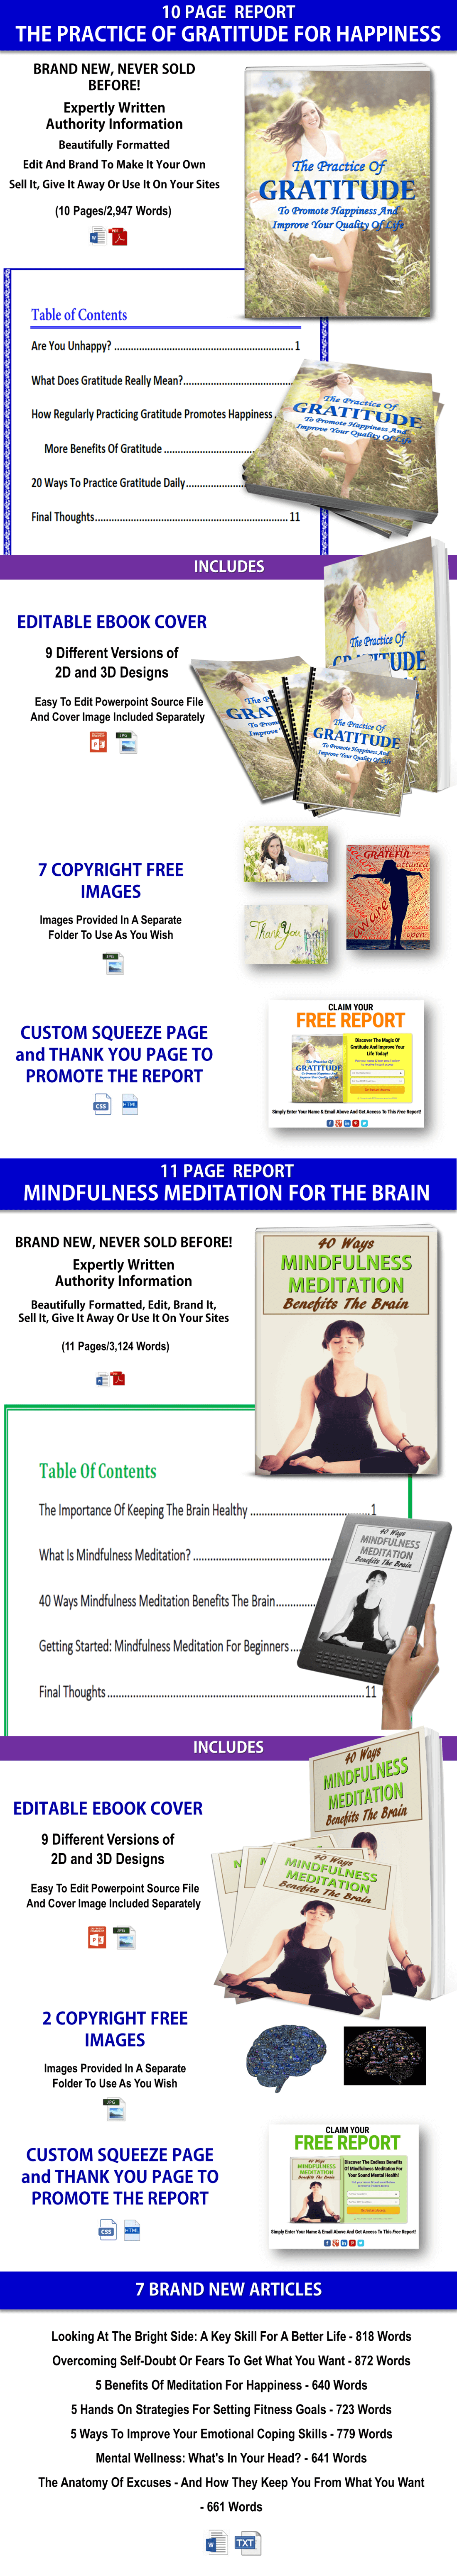 Gratitude For Happiness Report, Mindfulness For Brain Report & Articles PLR